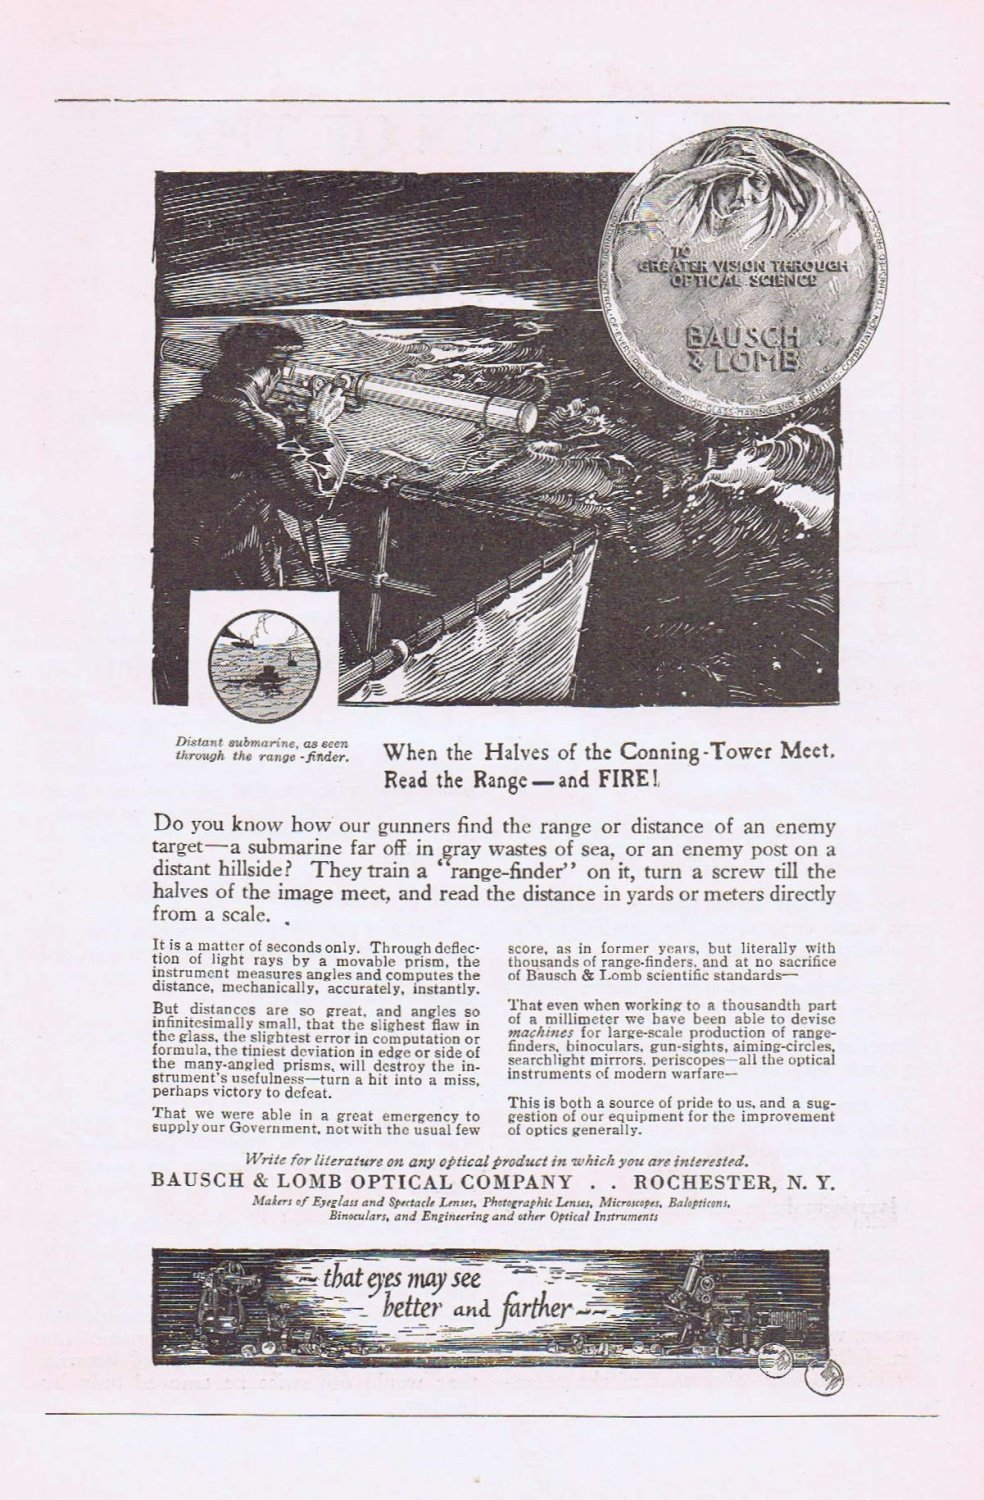 1920 Bausch and Lomb Optical Original Vintage Advertisement with Submarine Finder